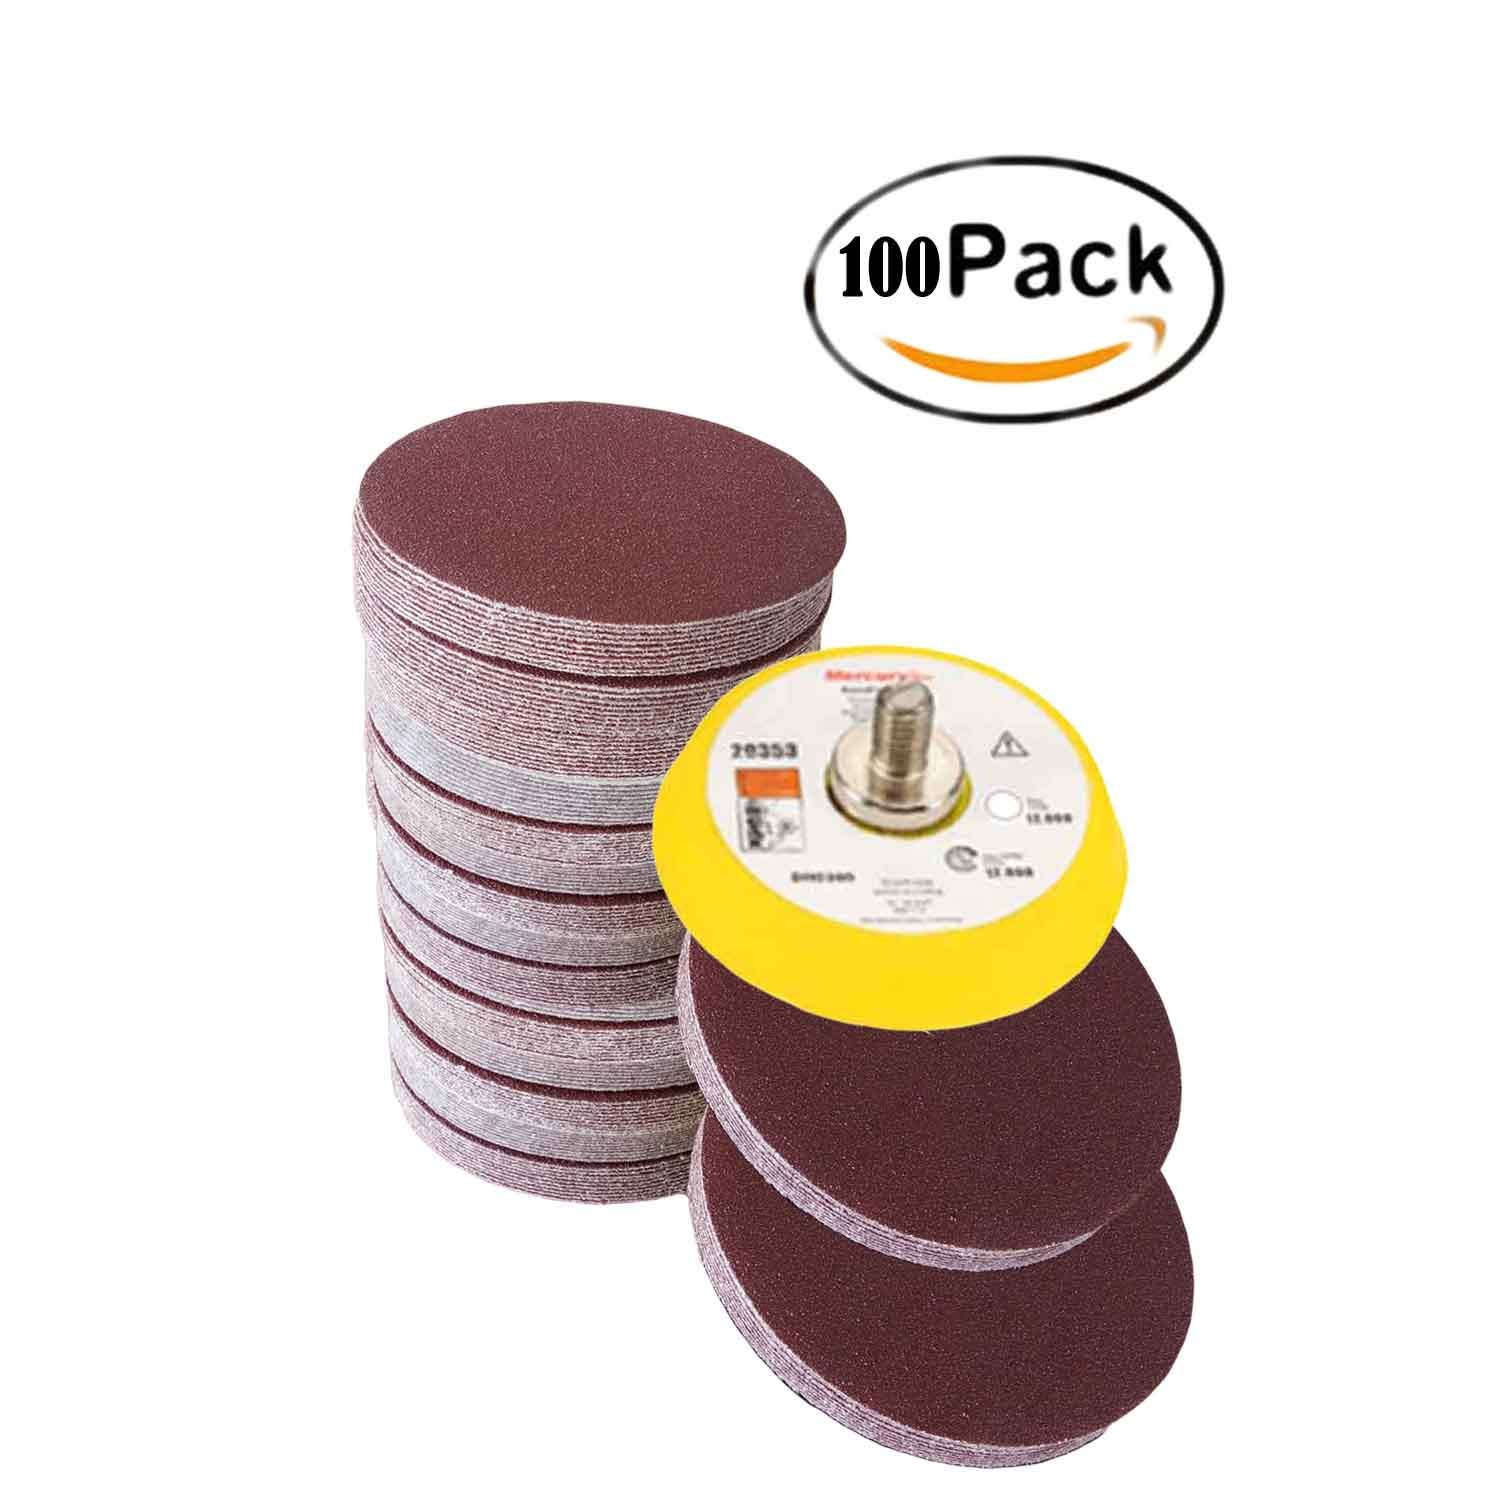 Fadetech 100 Pieces 2 Inch Sanding Discs 80/100/120/180/240/320/400/800/1200/2000 Grit Sandpaper Assortment for Drill Grinder